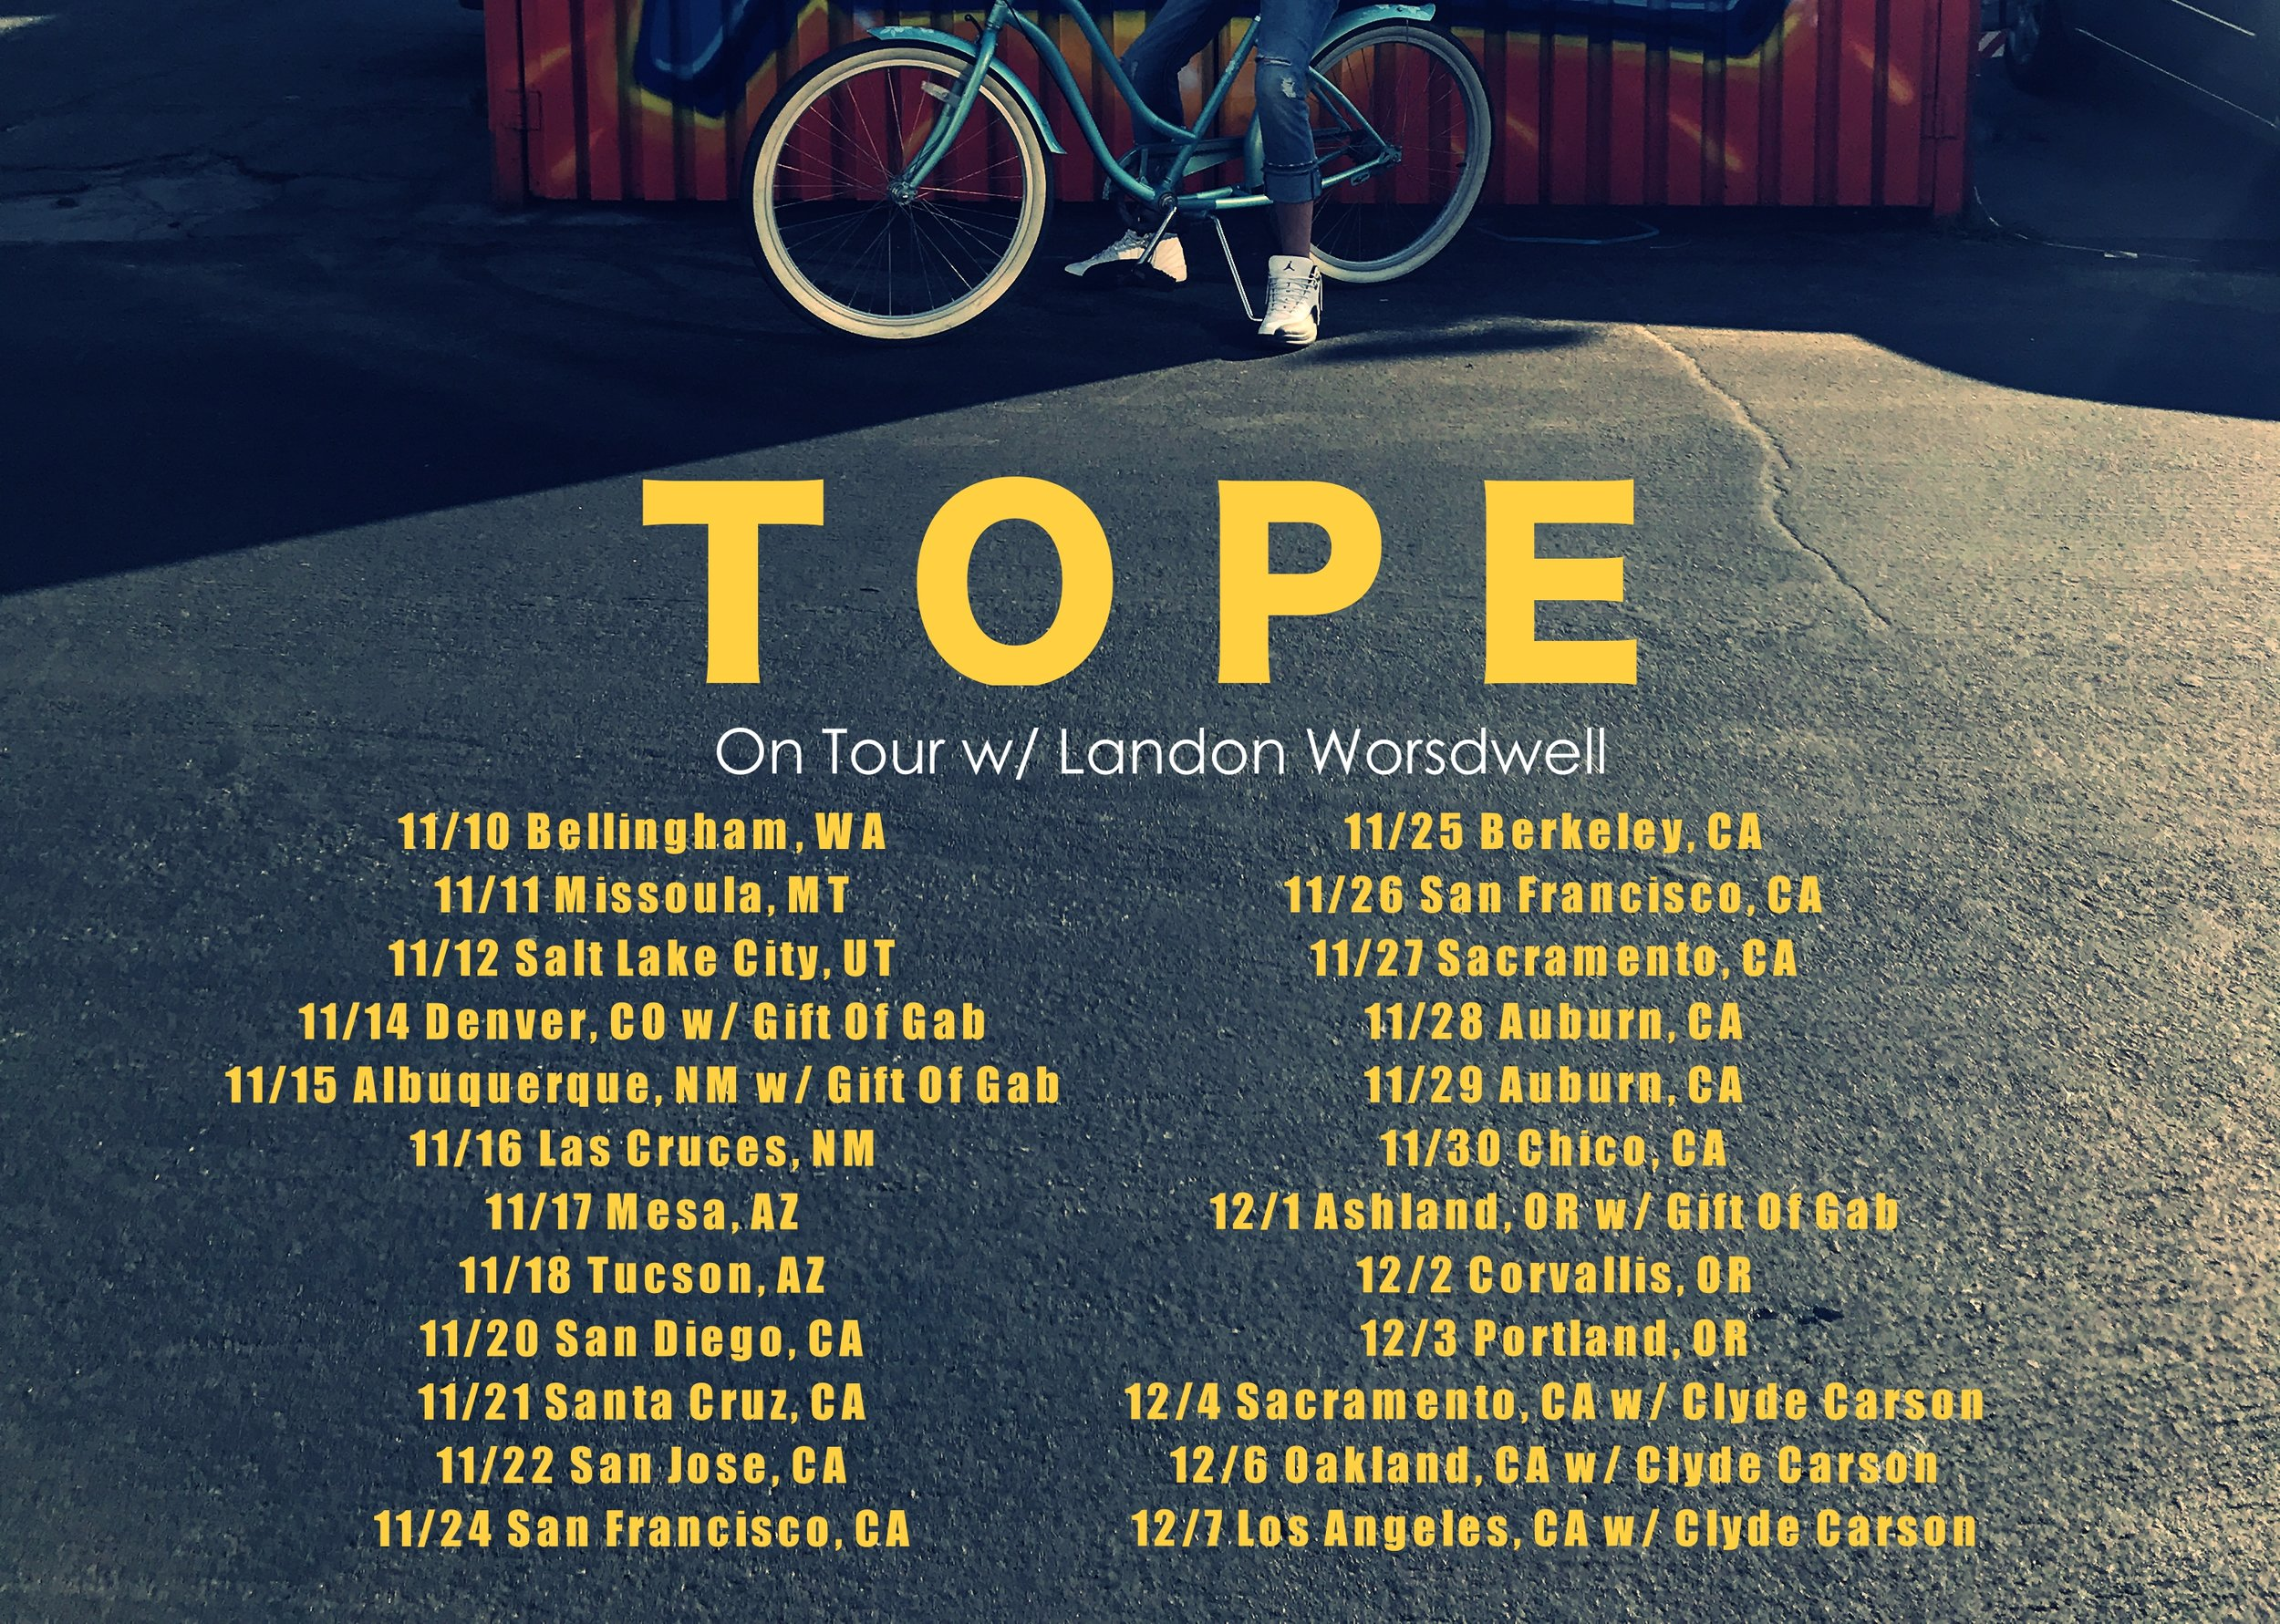 TOPE Nov Dec Tour.jpg